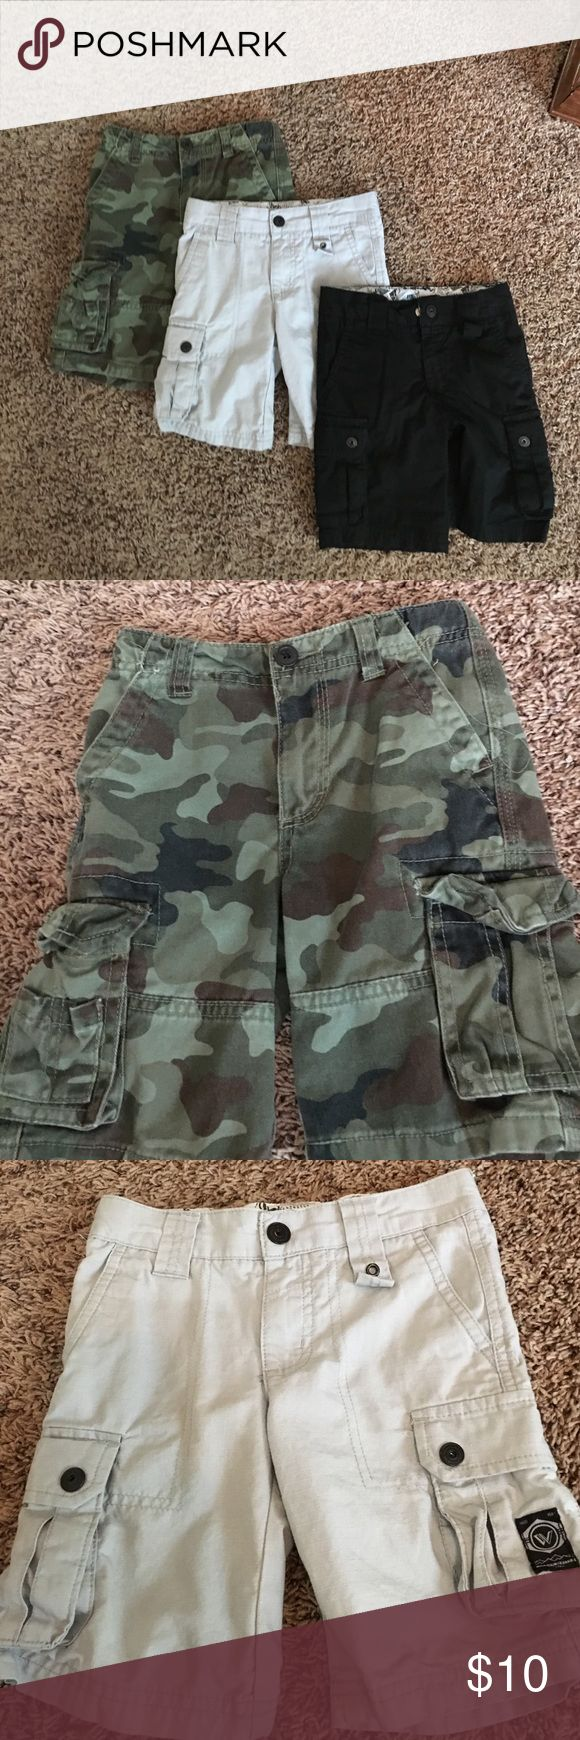 3 pairs of Shawn white boys cargo shorts Shawn white green camo cargo shorts, Shawn white gray cargo shorts, Shawn white black cargo shorts. All size 4 boys. Good condition, each pair worn once. shawn white Bottoms Shorts